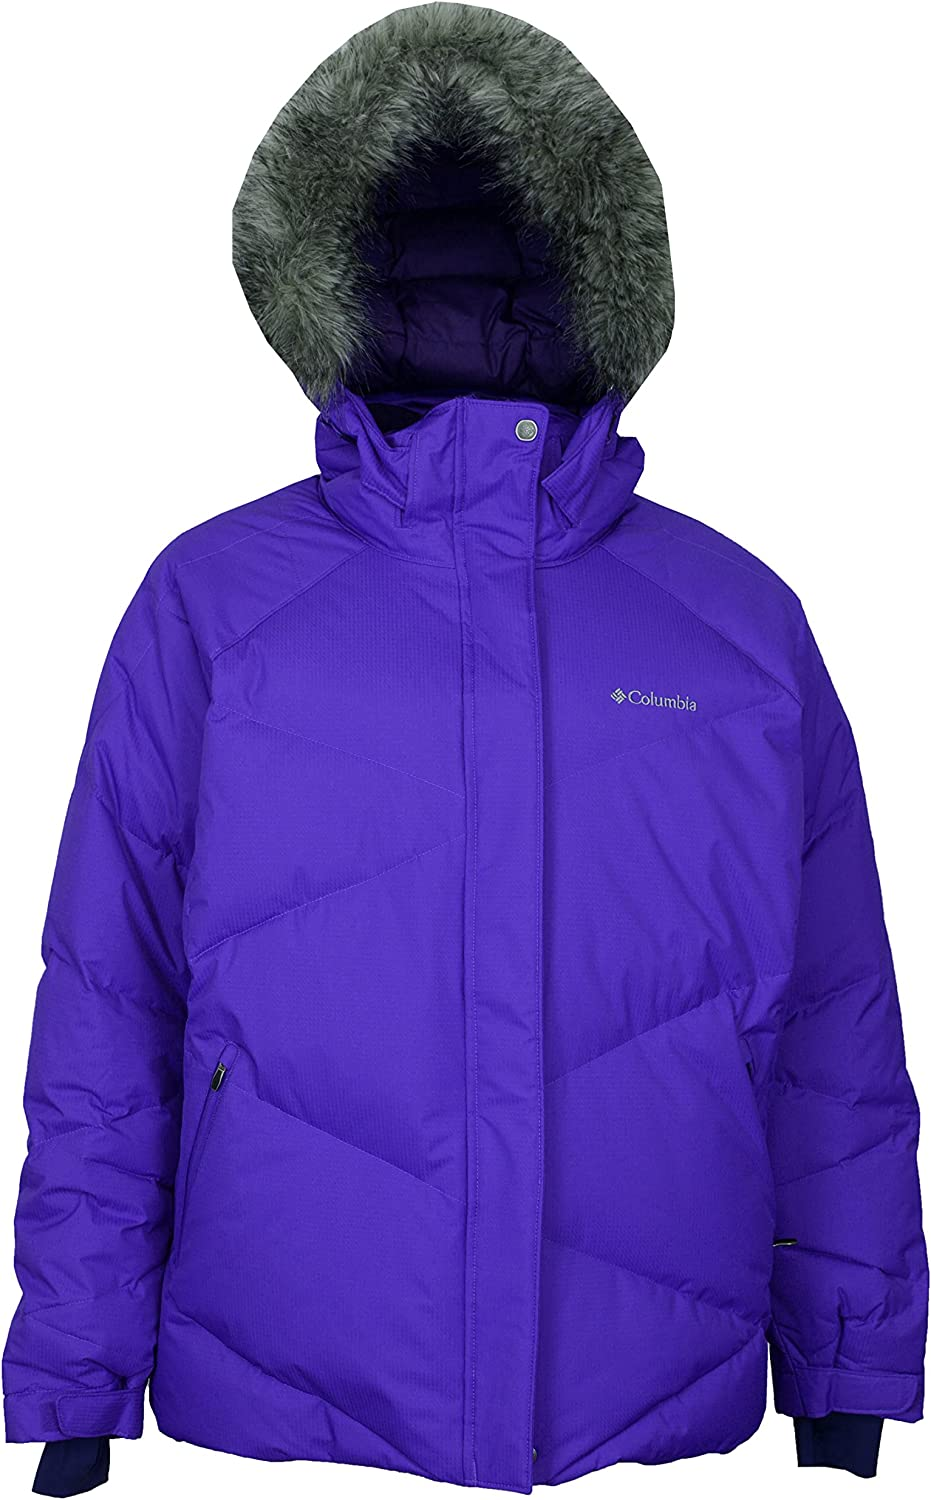 Columbia Women's Plus Size Down Lay Recommended D Jacket Special Campaign